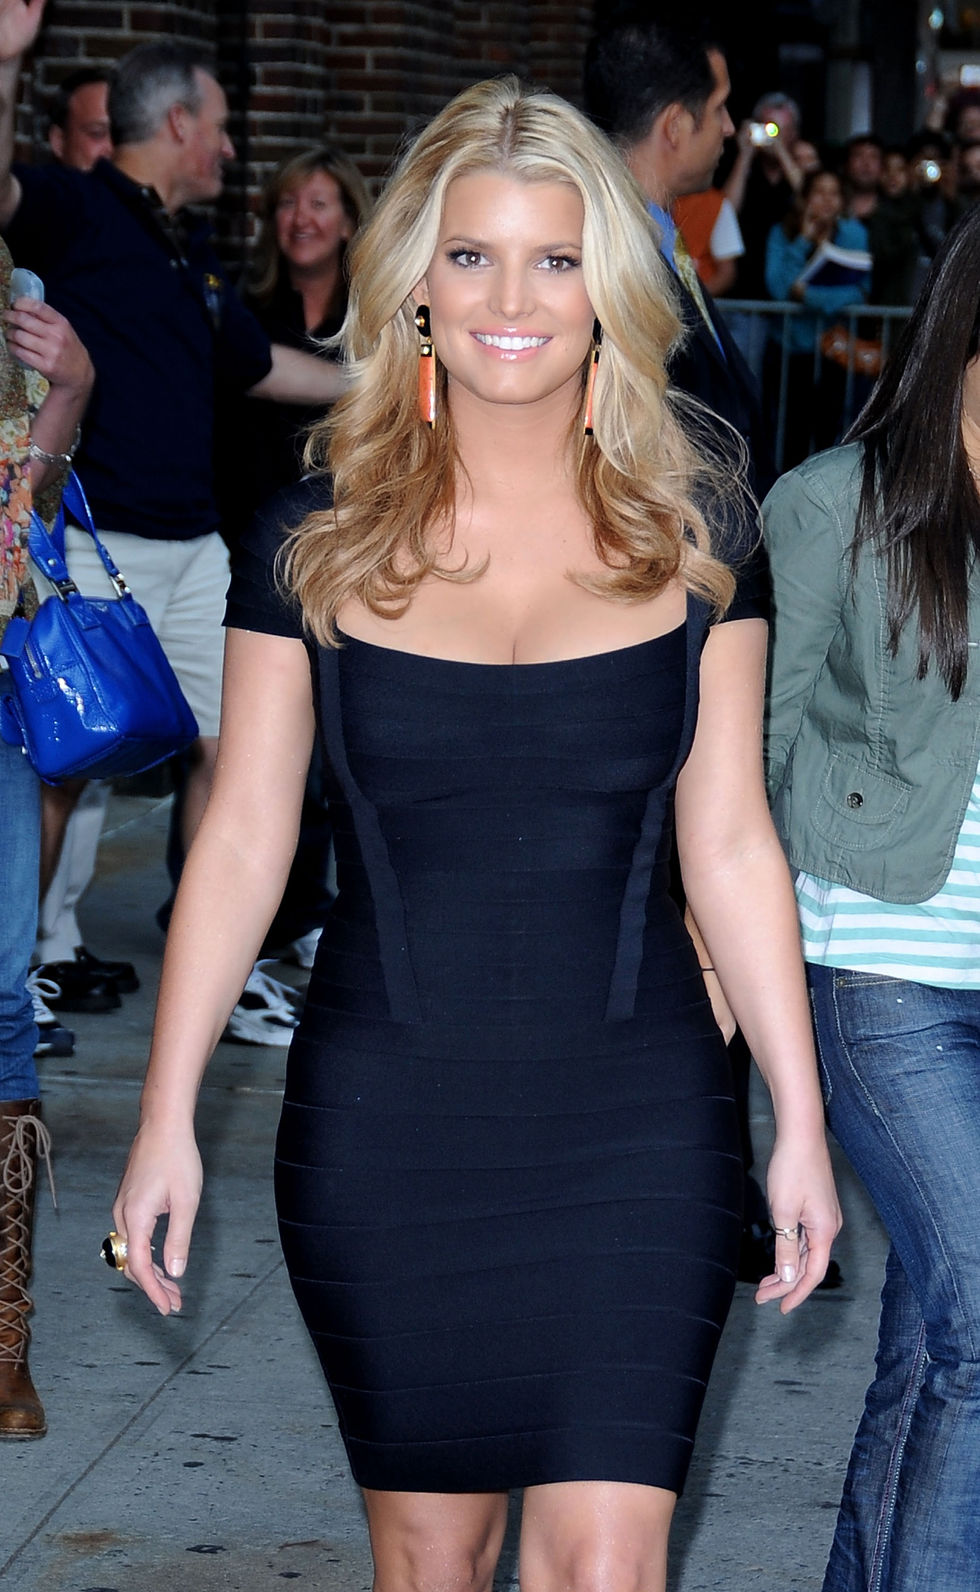 jessica-simpson-at-the-late-show-with-david-letterman-in-new-york-city-11